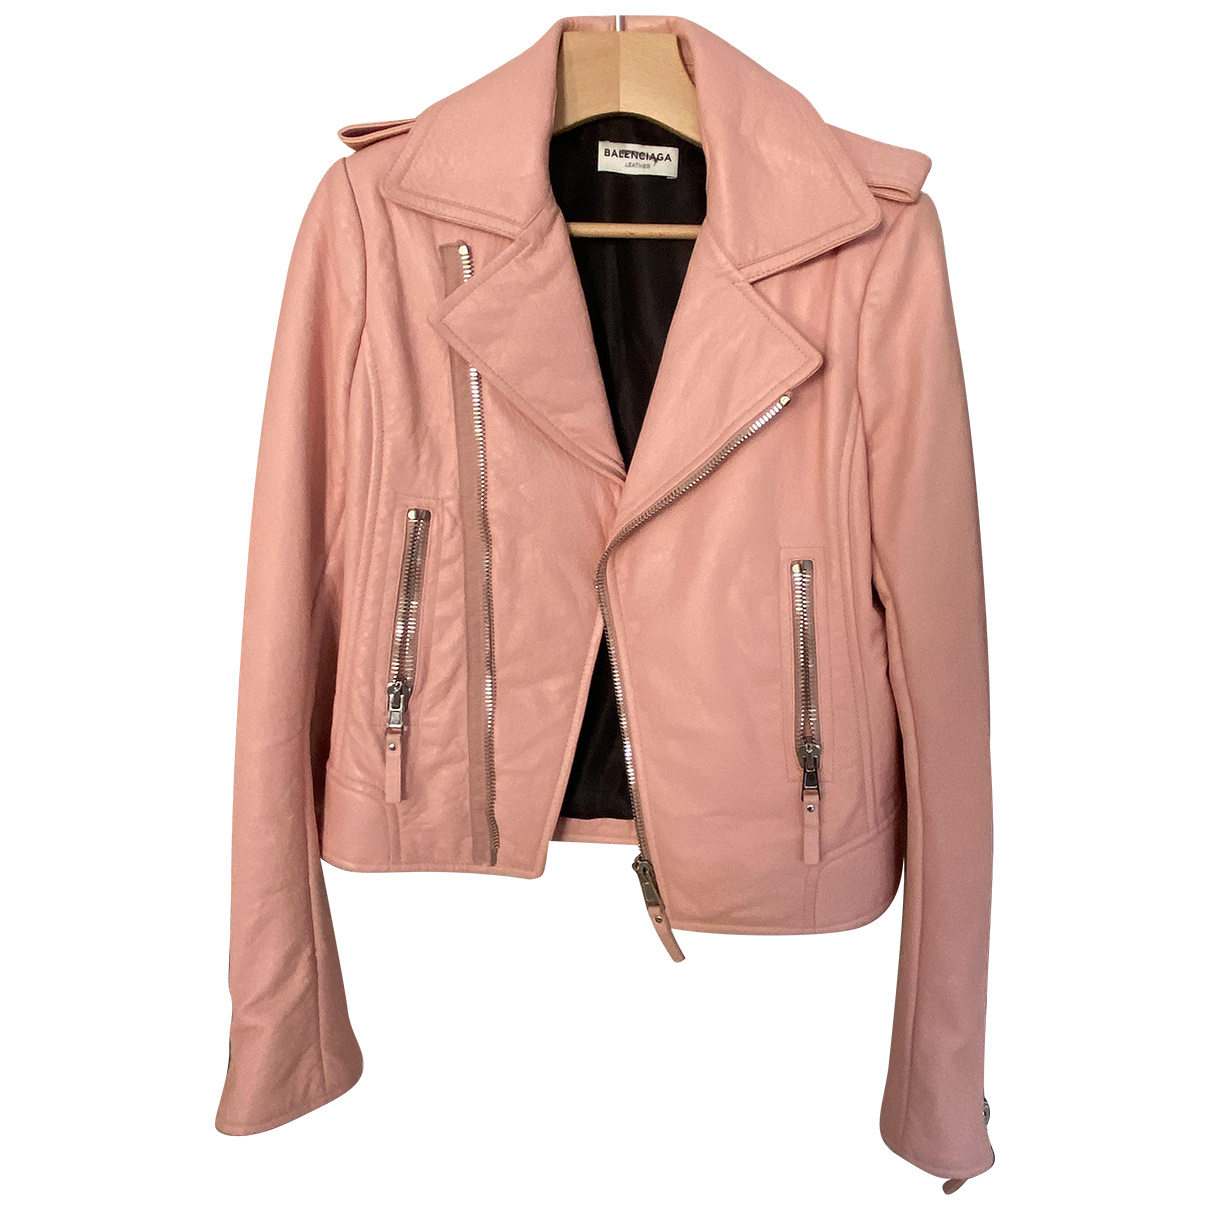 Balenciaga N Pink Leather Leather jacket for Women 38 FR